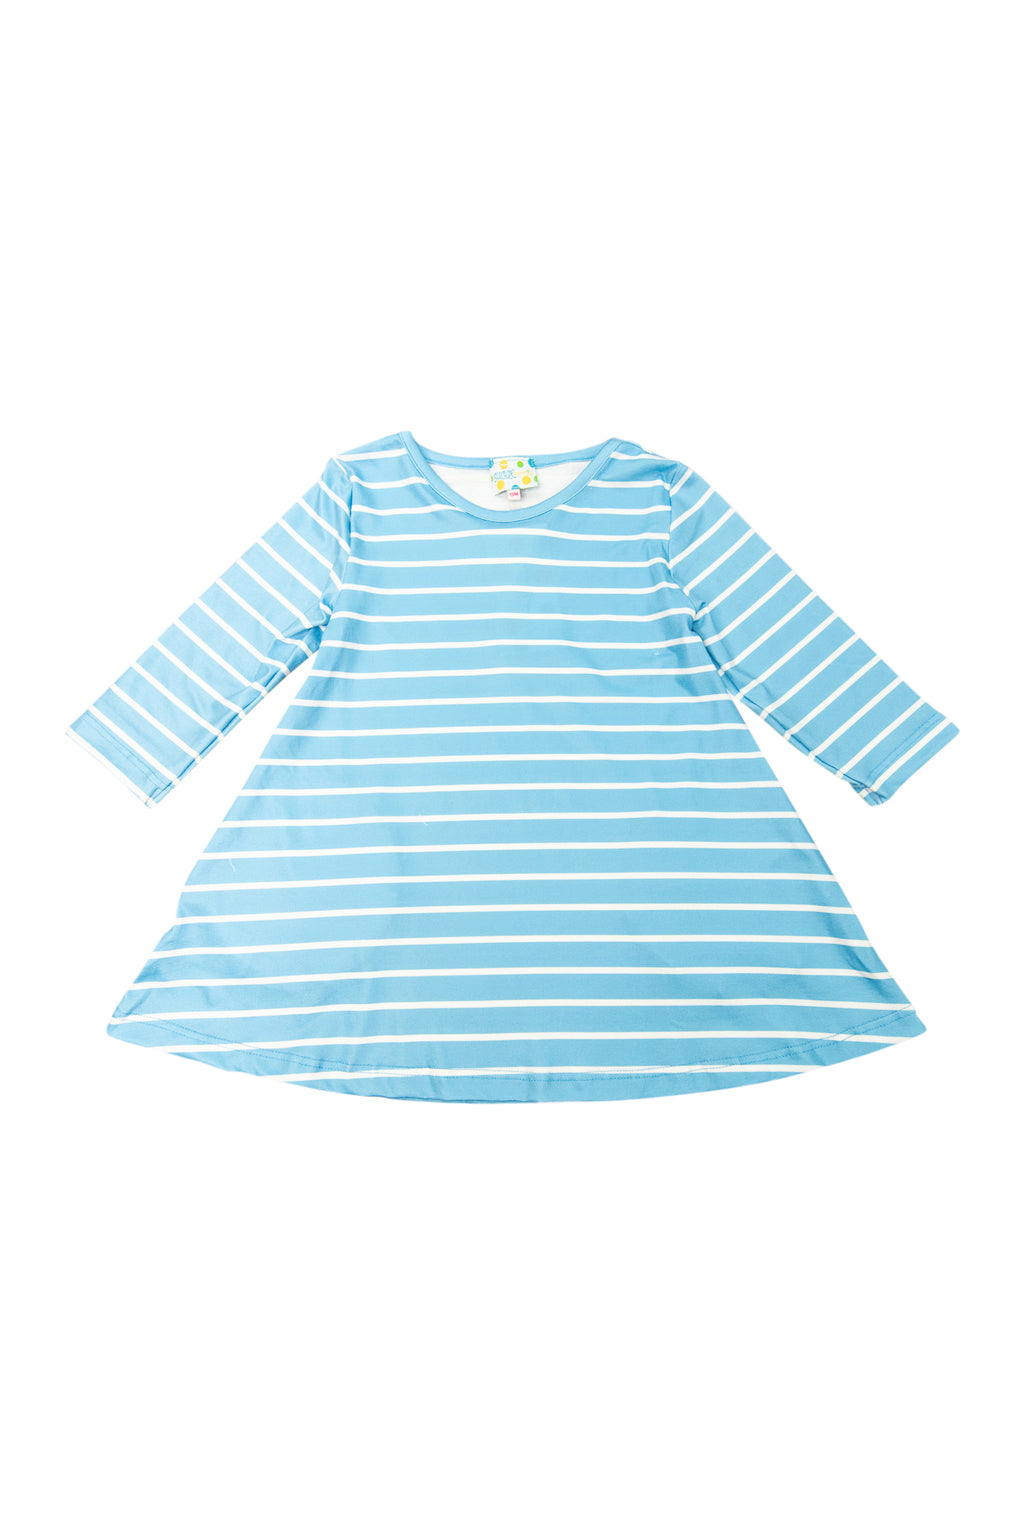 Mom's Blue Stripes Dress